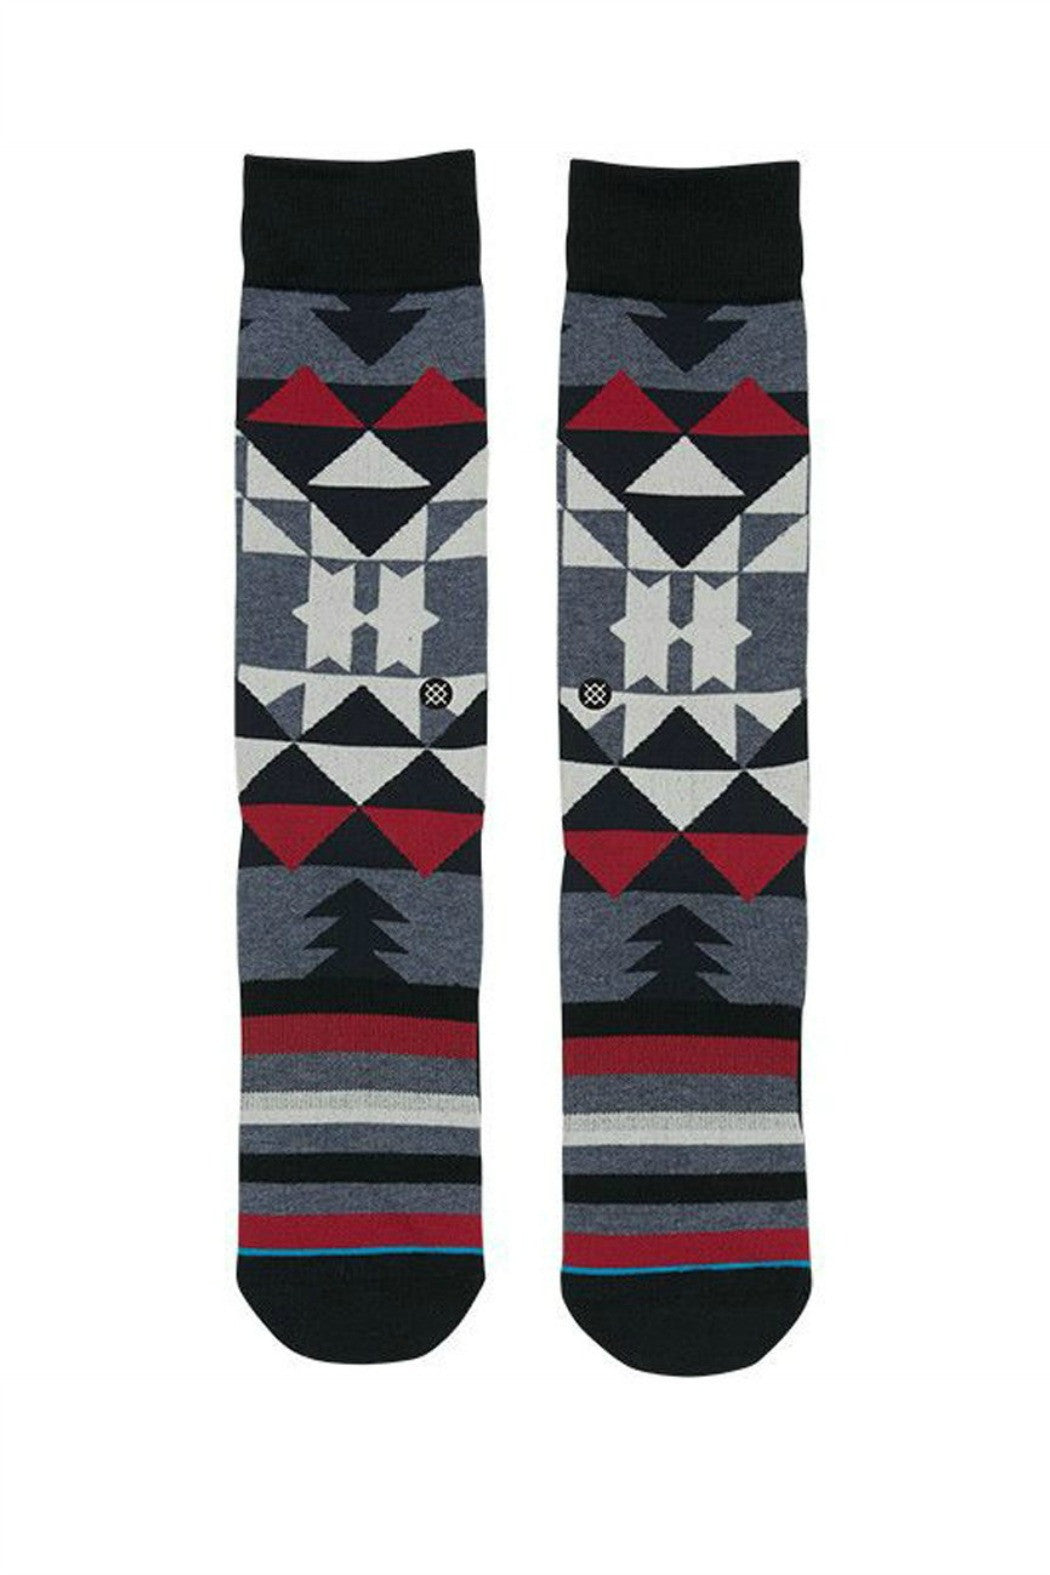 Stance - Steed Socks - R+D Hipster Emporium | Womens & Mens Clothing - 2